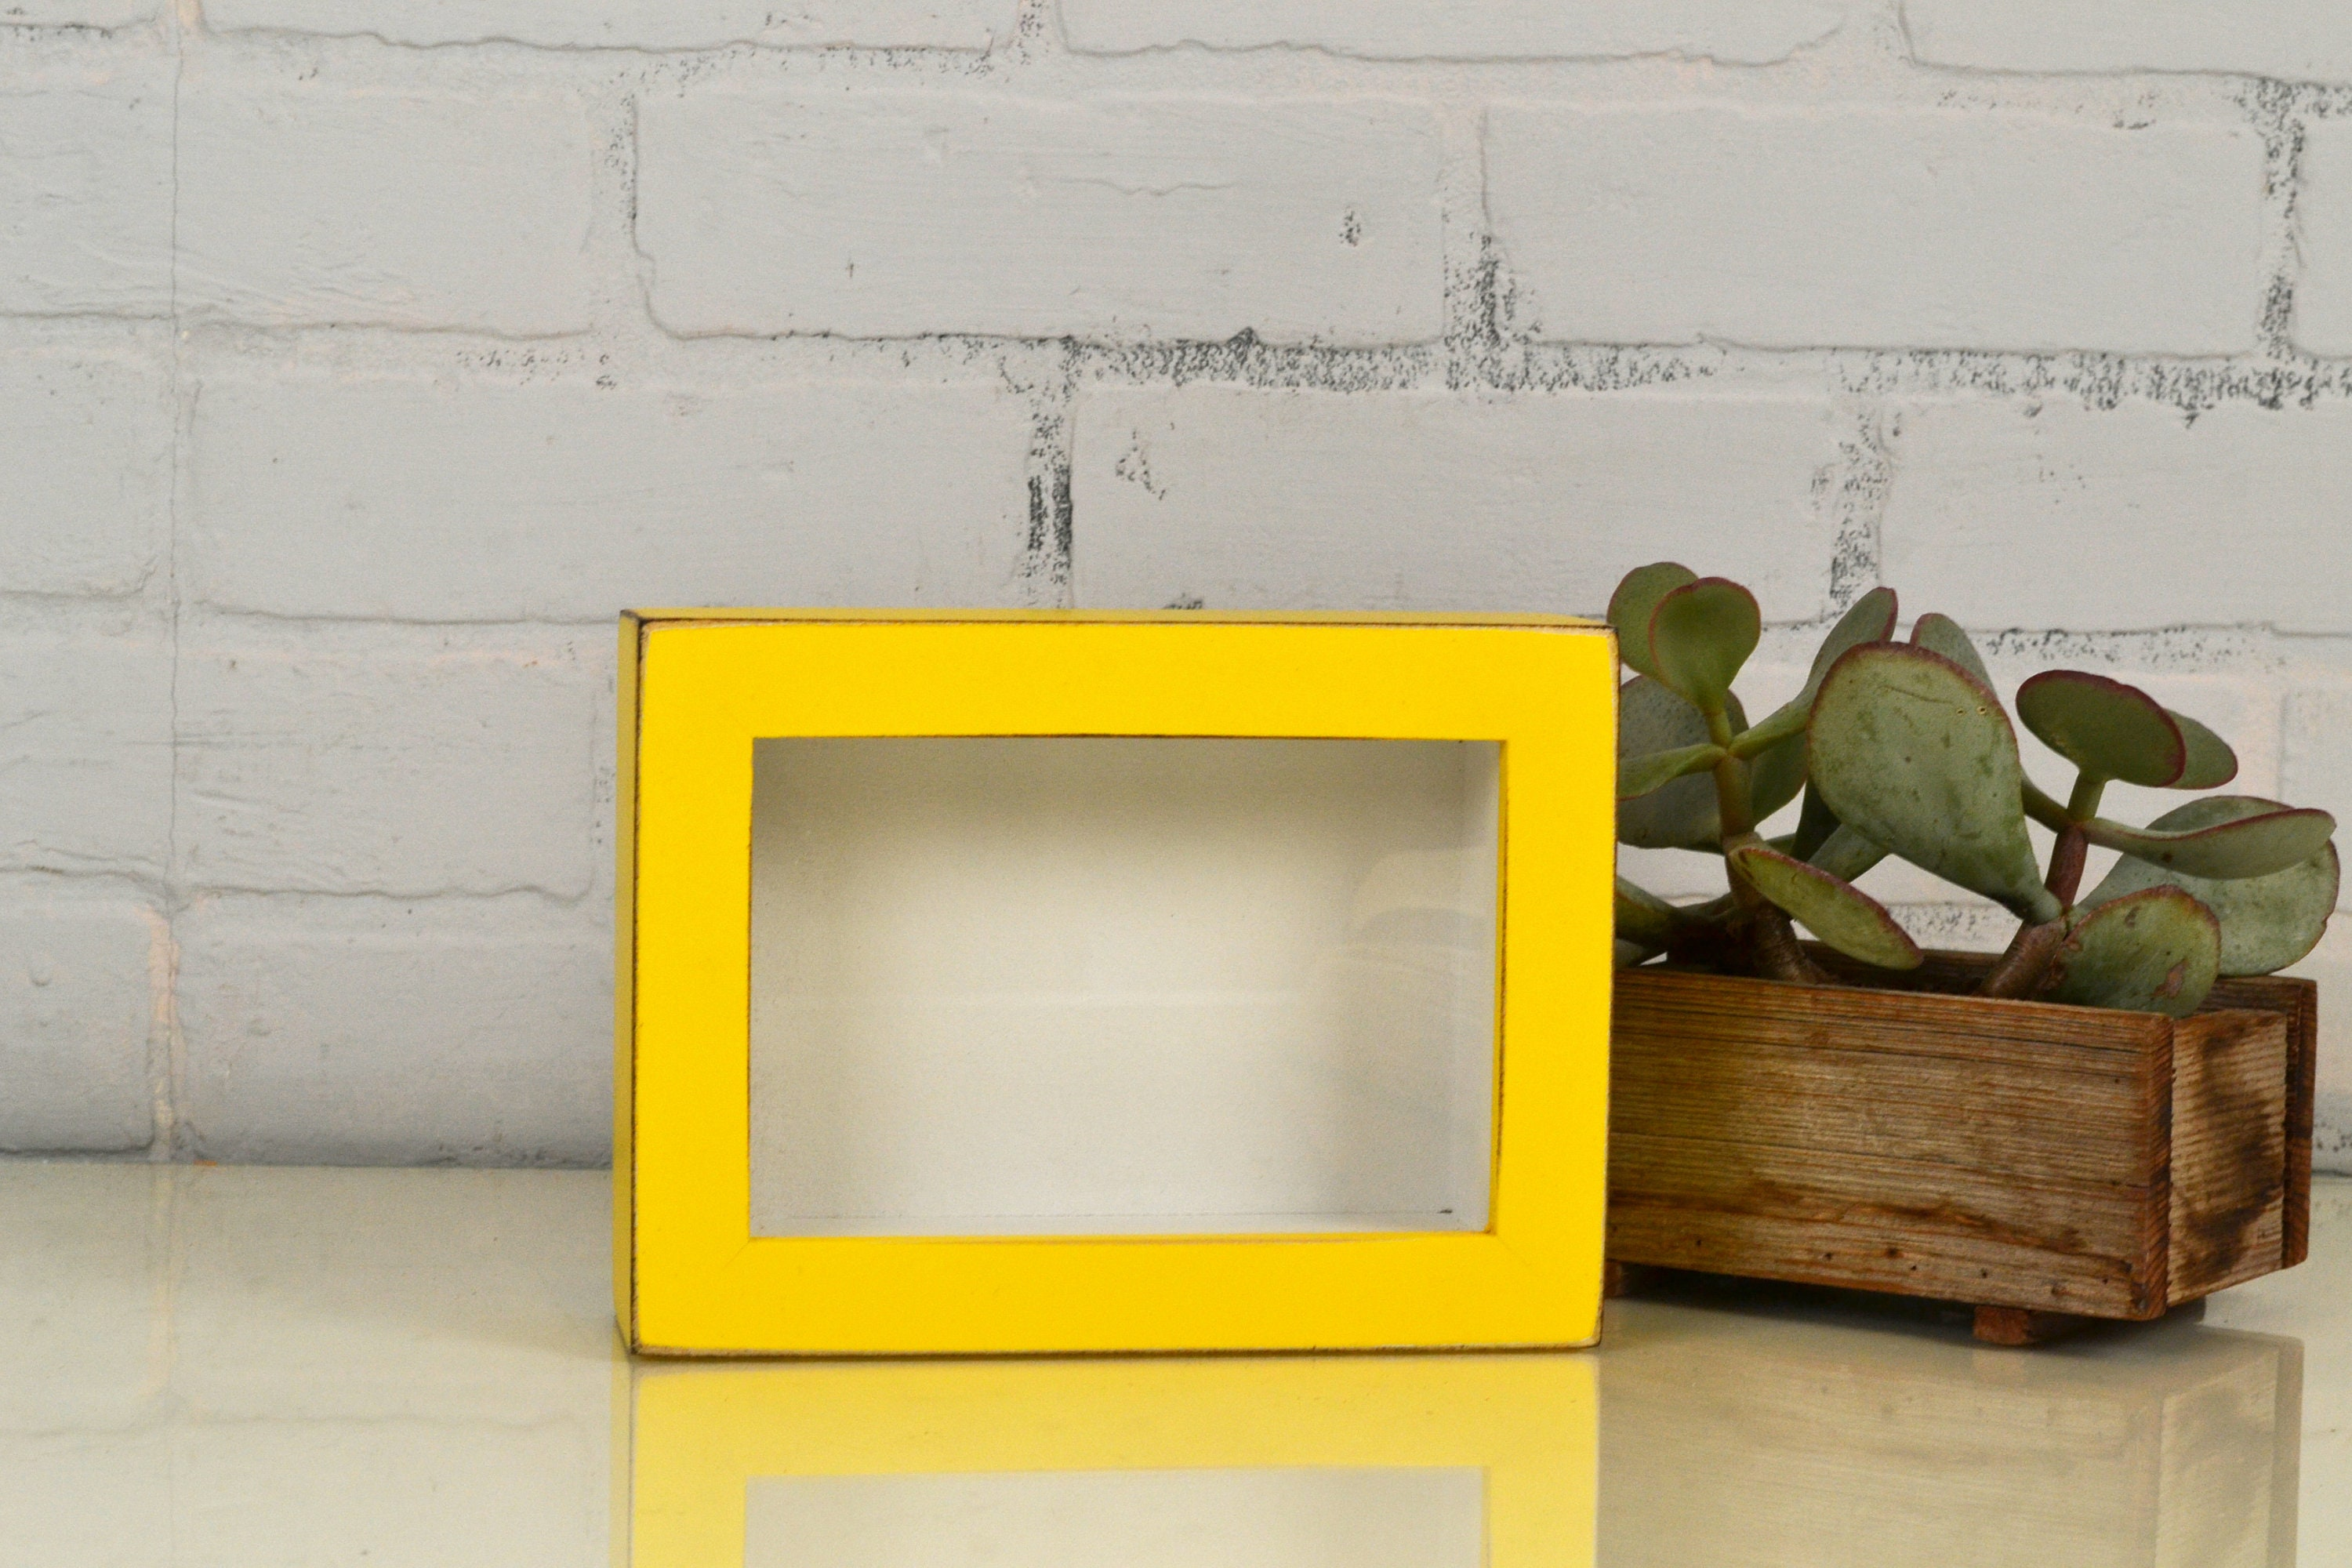 Small Shadow Box Frame - Holds up to 4 x 6 x 1.25 Deep - Vintage ...